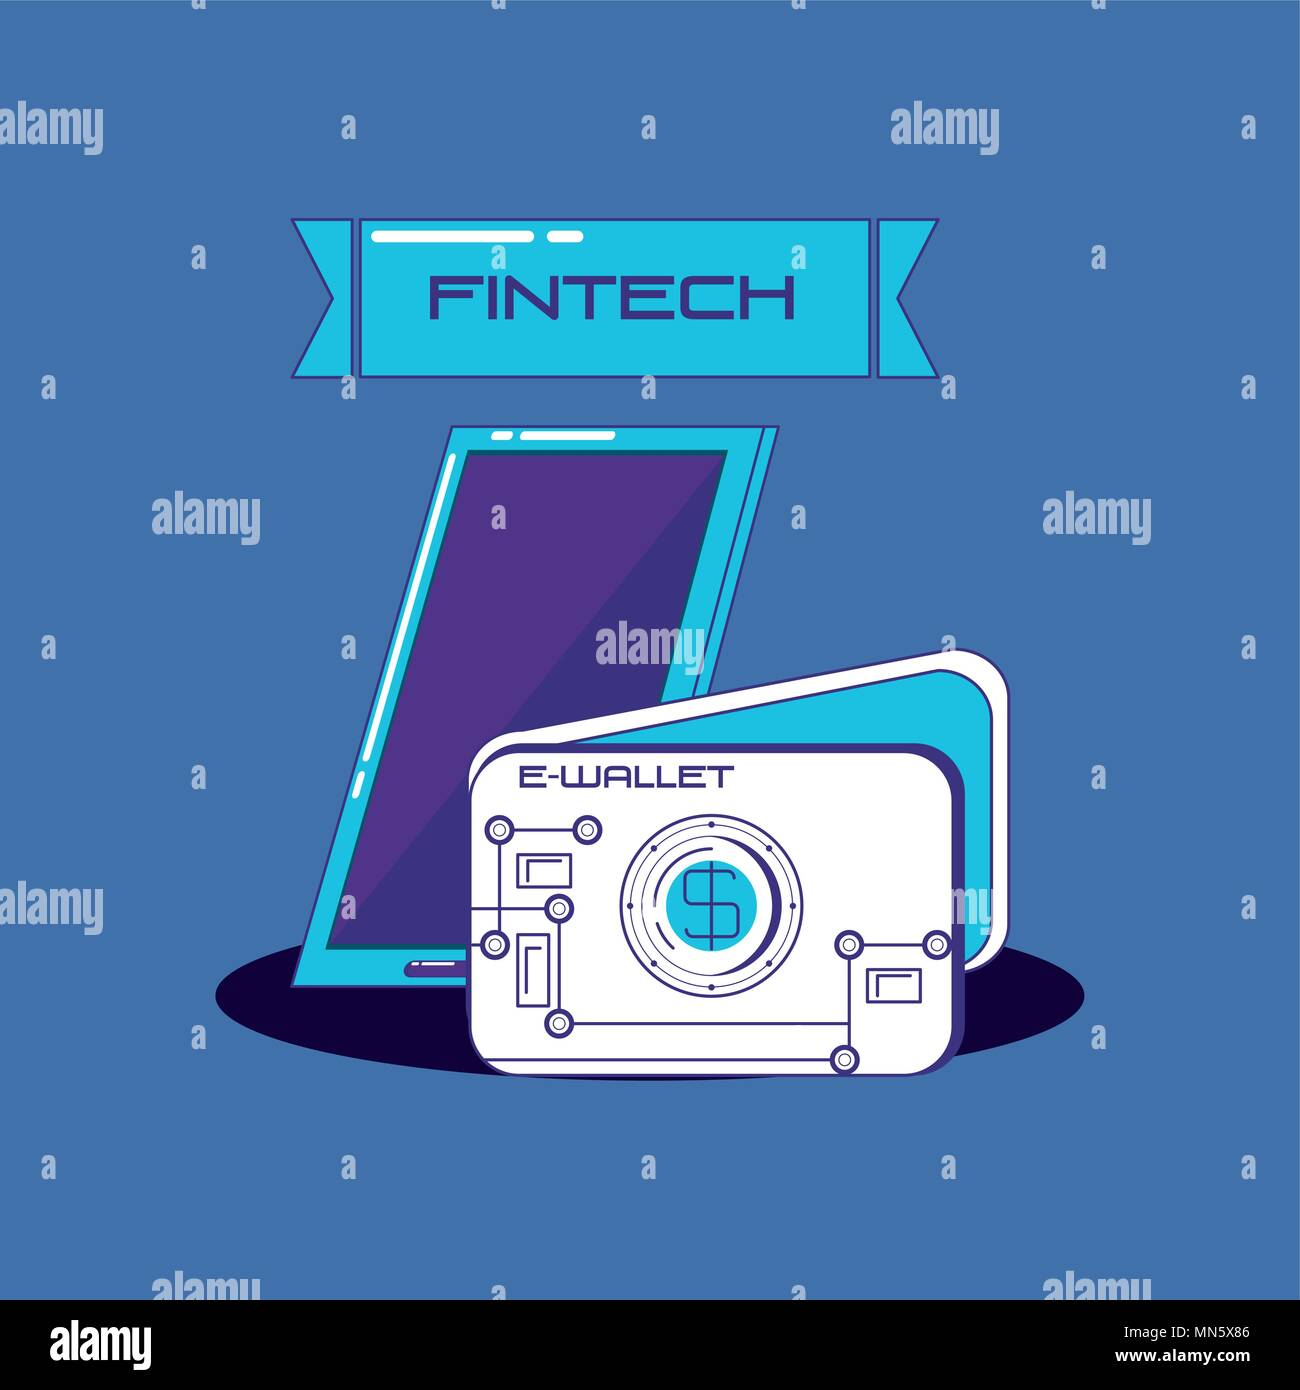 Fintech concept with smartphone and wallet over blue background, vector illustration - Stock Image